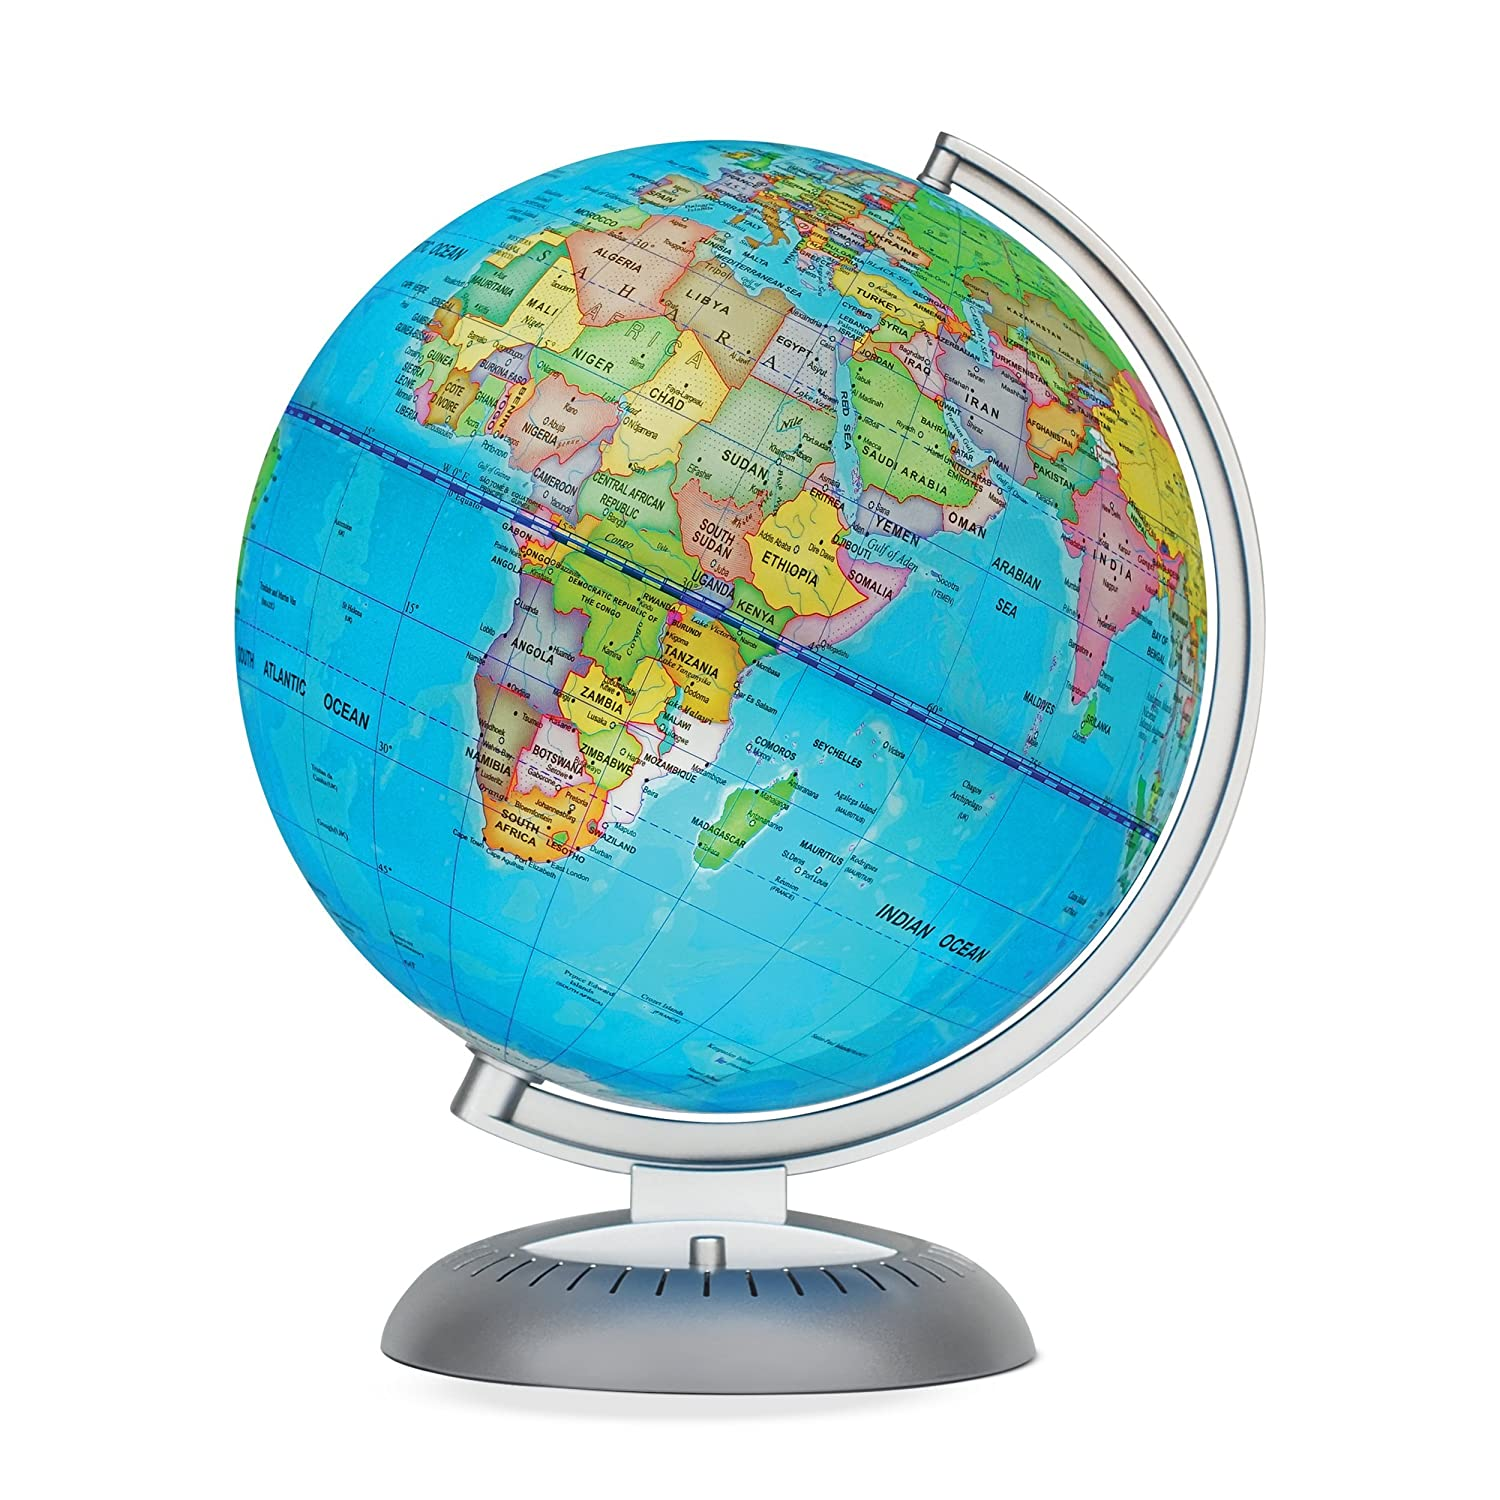 Illuminated World Globe for Kids With Stand,Built in LED for Illuminated Night View (Renewed)